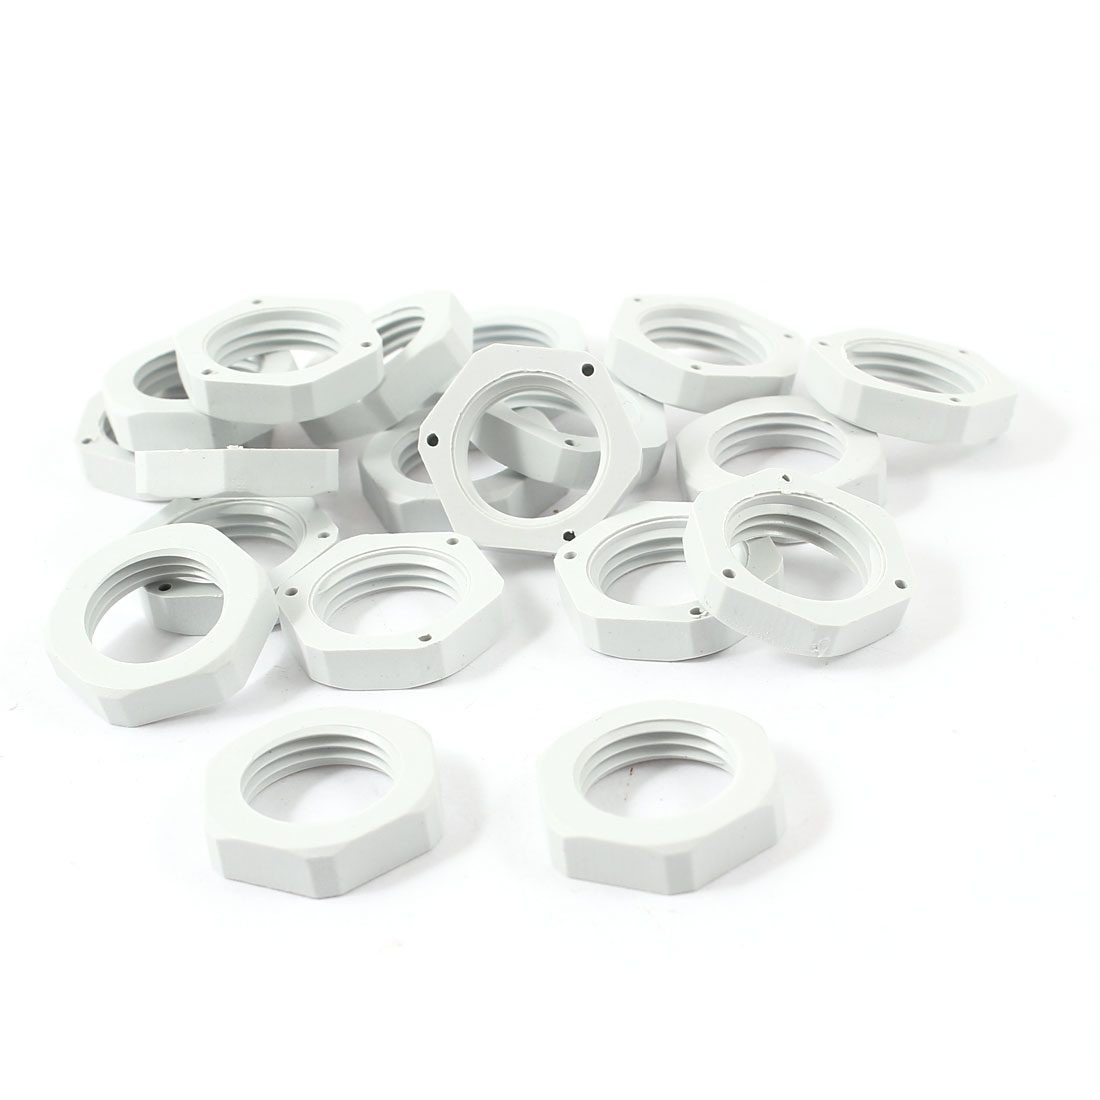 20 PCS 16mm x 21mm Gray Plastic Hex Head Female Thread Pipe Hose Tube Fastener Screw Nut